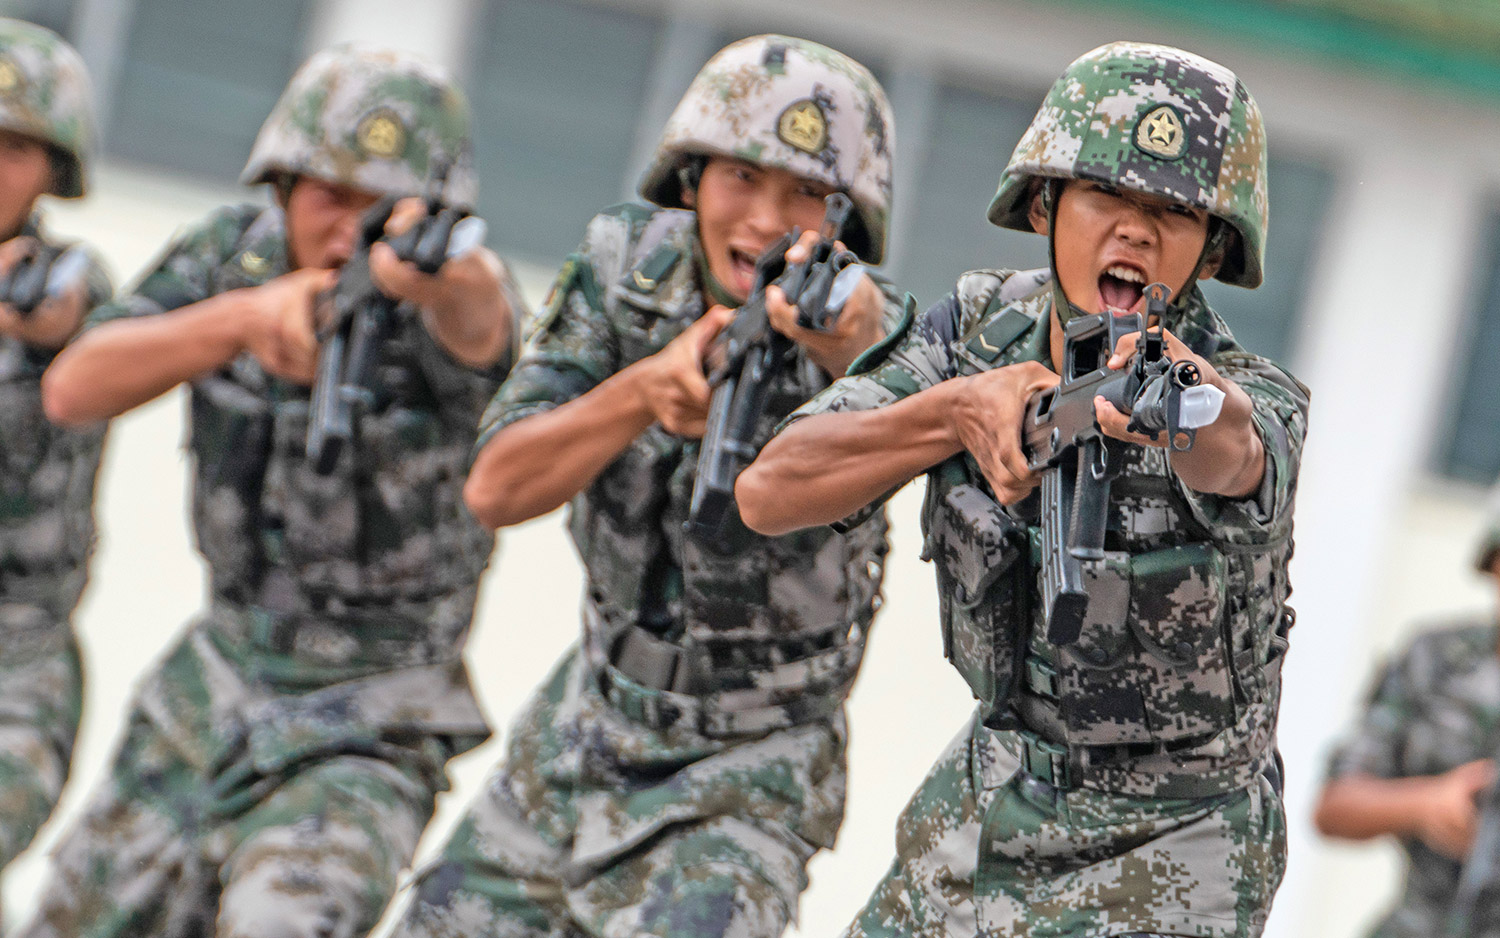 China's New Laser Gun Can Zap You with a Silent, Carbonizing